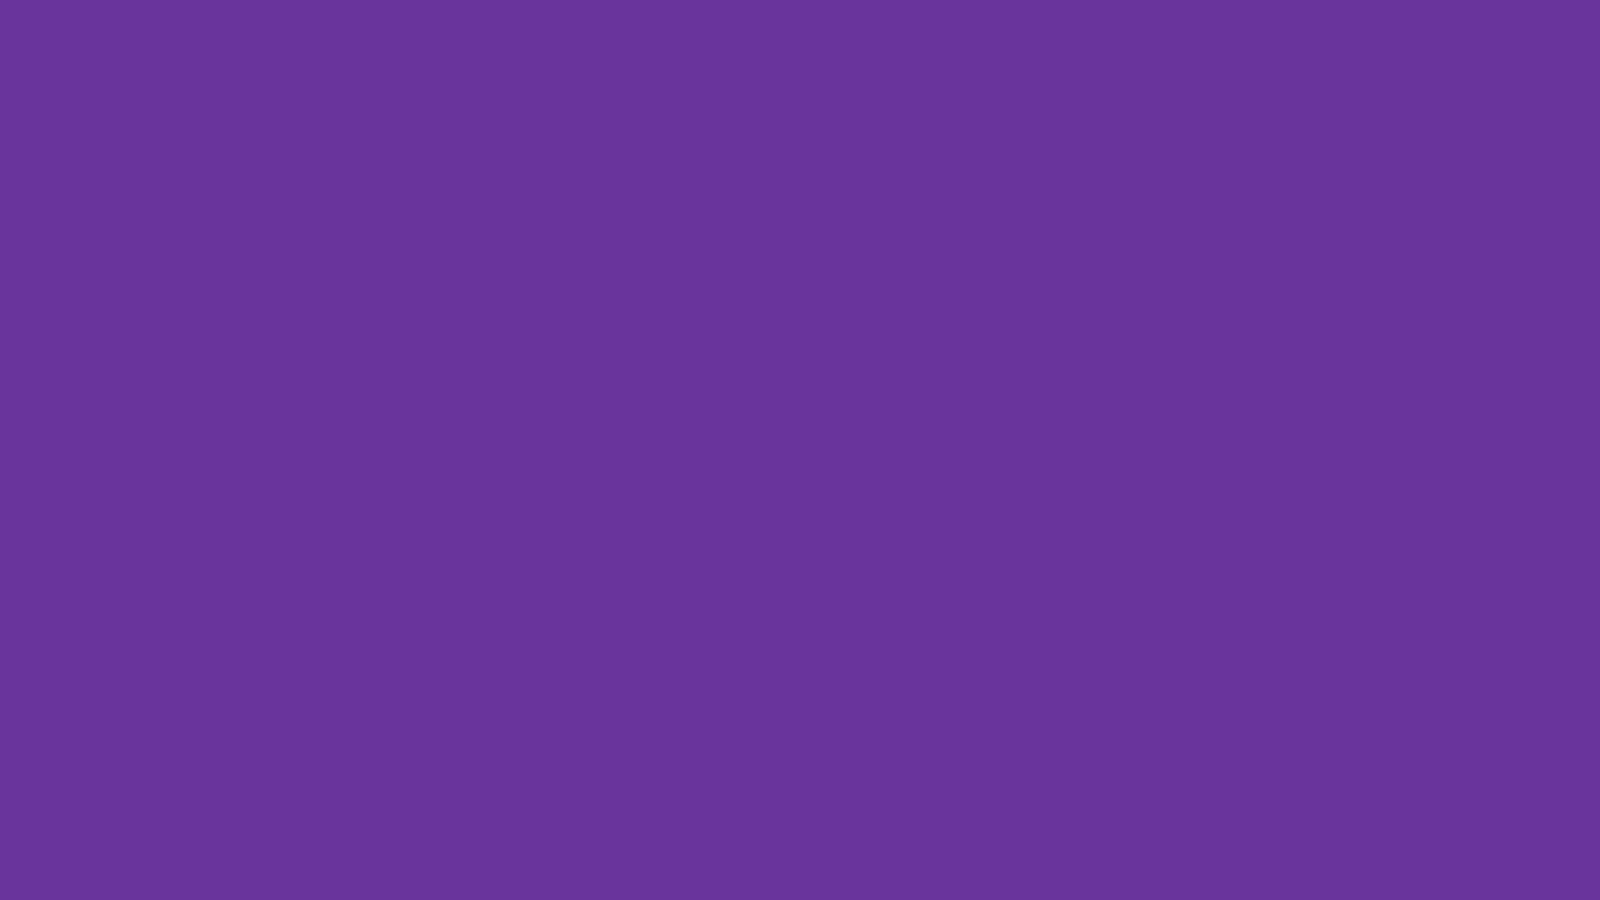 1600x900 Purple Heart Solid Color Background